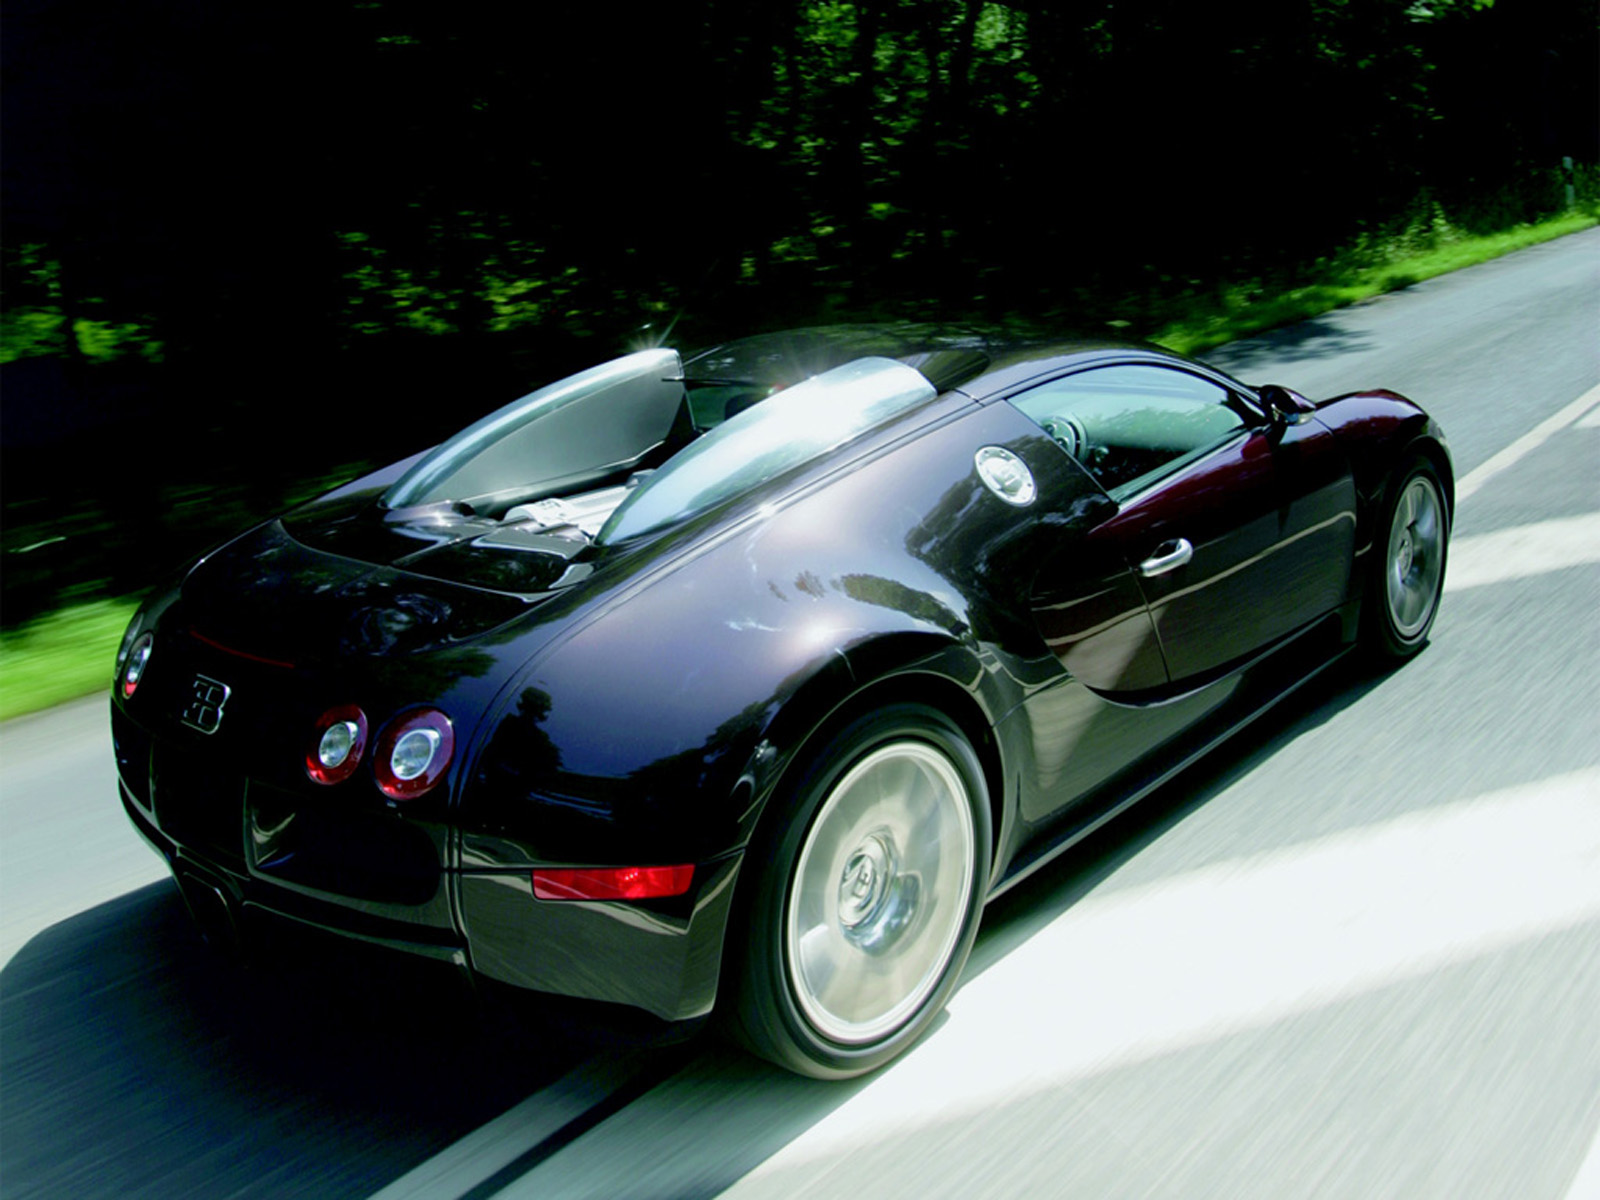 hd car wallpapers bugatti veyron. Black Bedroom Furniture Sets. Home Design Ideas